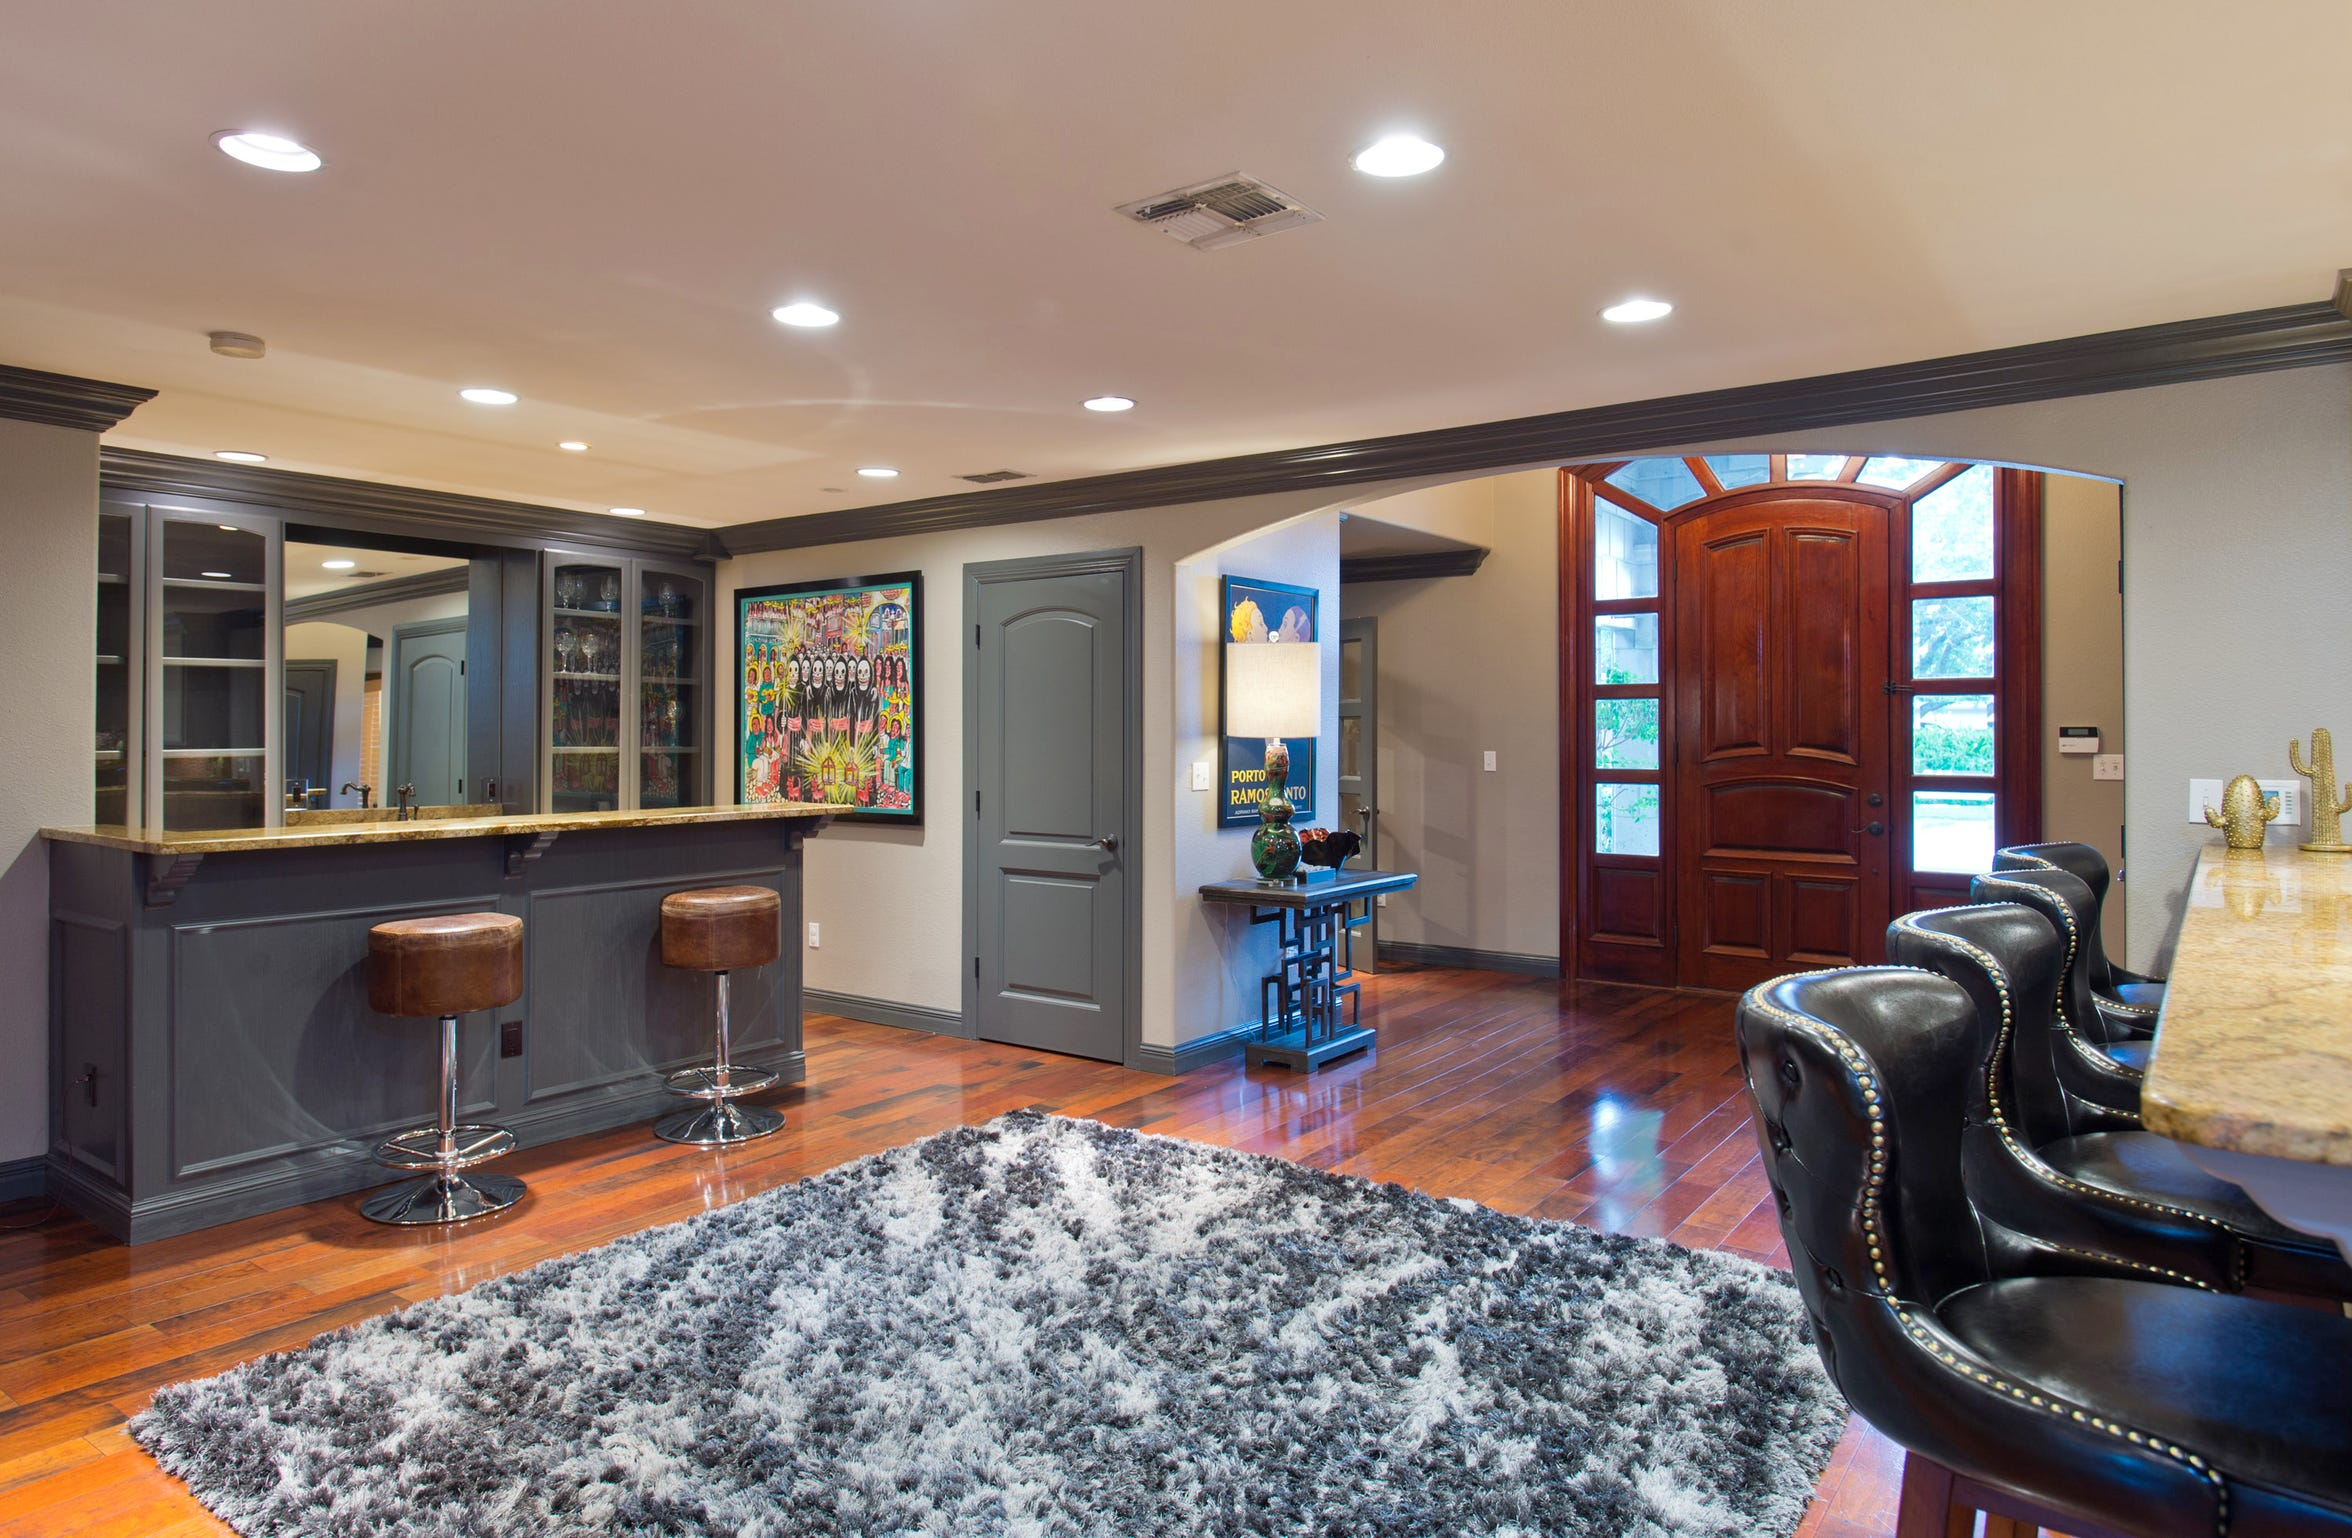 The dramatic entry foyer leads into a bar area that is open to the kitchen.